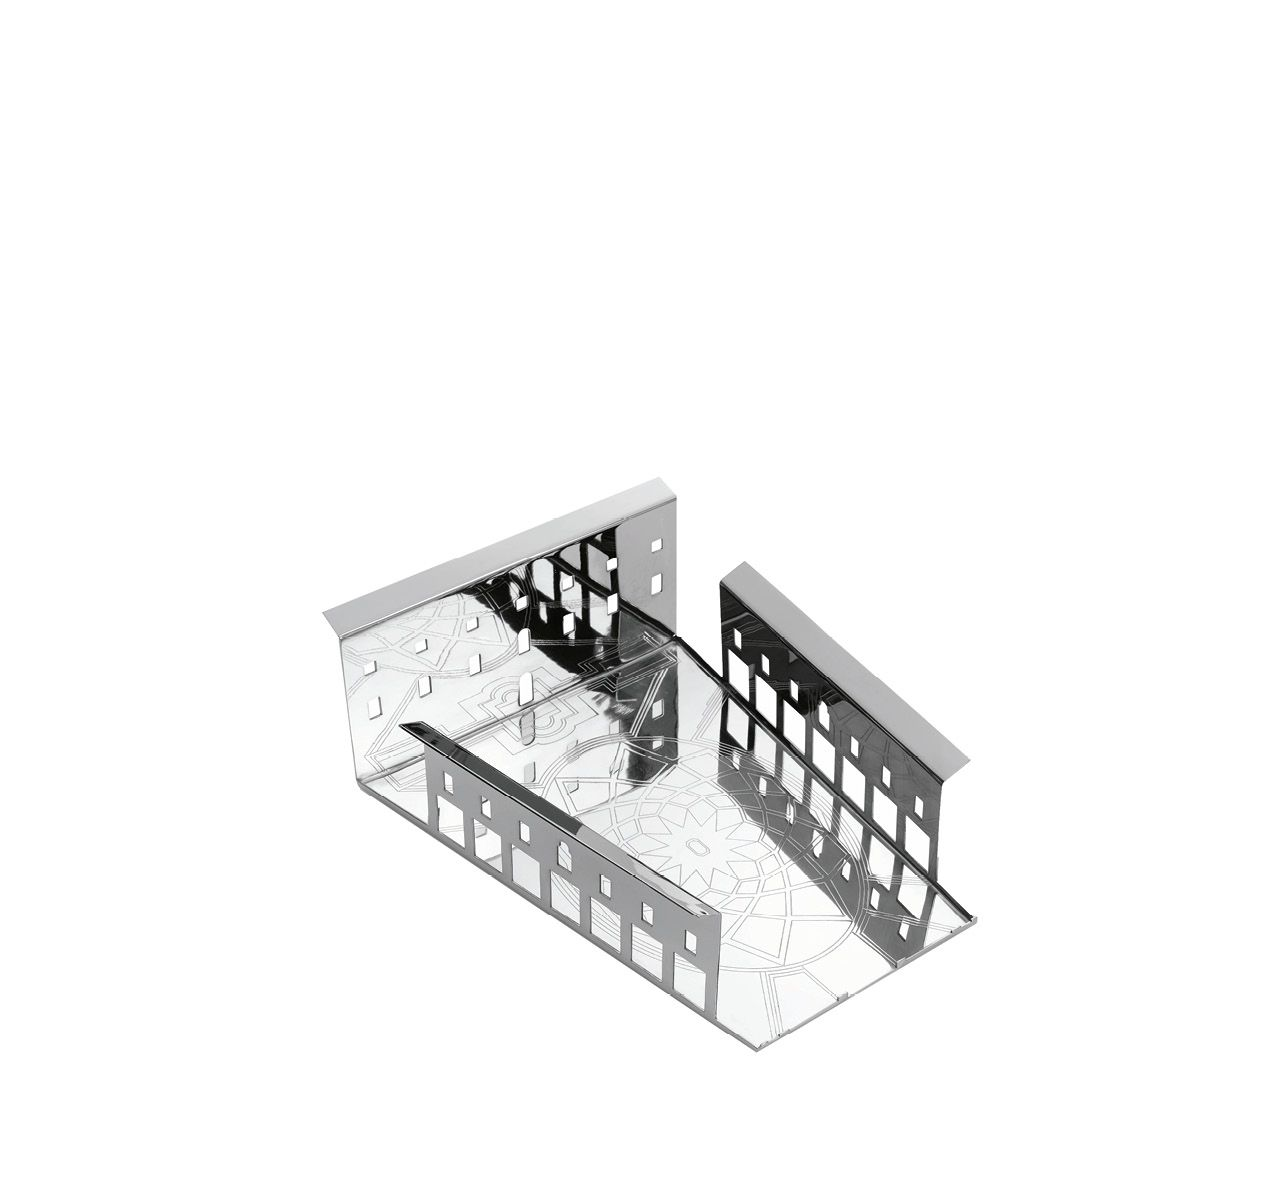 100 Piazze - Roma Piazza Campidoglio Tray Stainless Steel